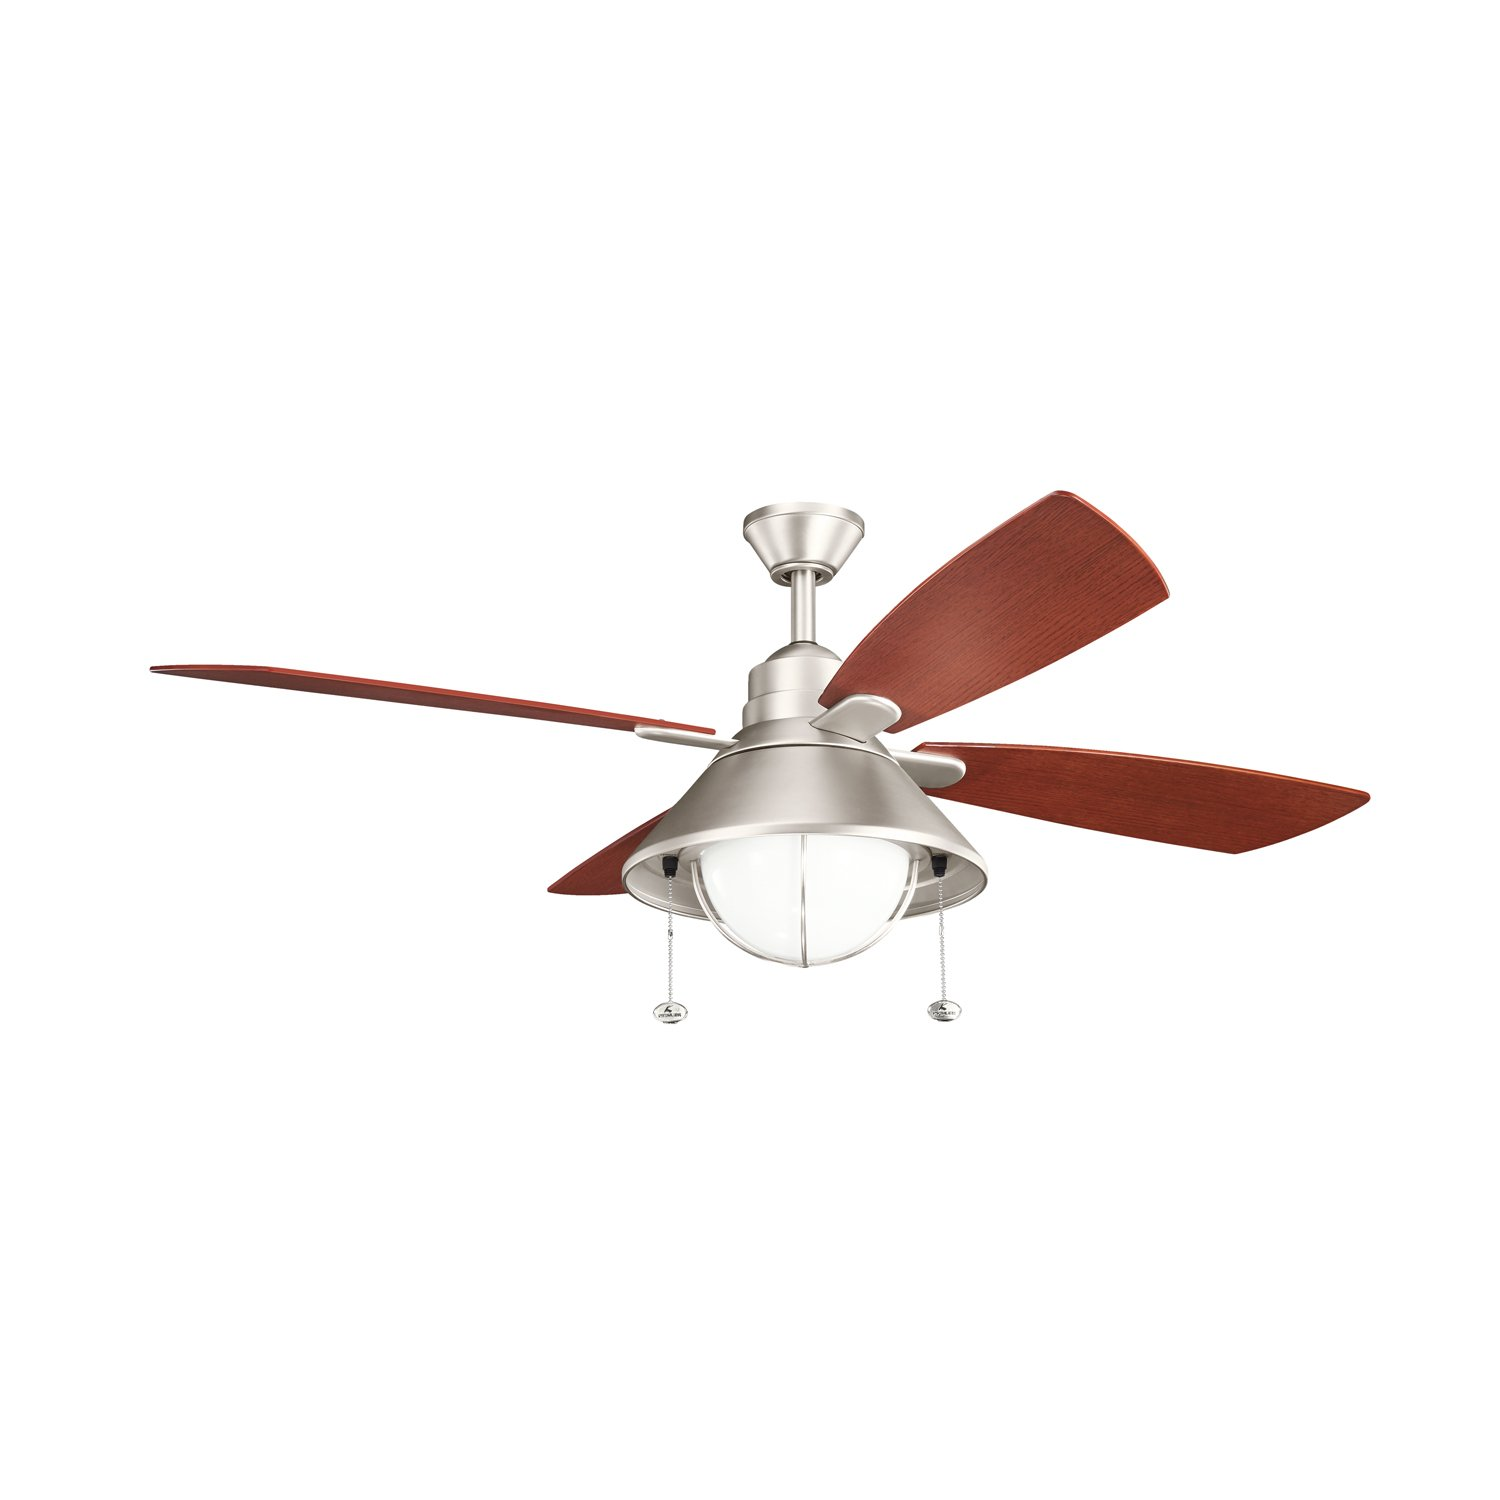 Kichler NI 54 Ceiling Fan Close To Ceiling Light